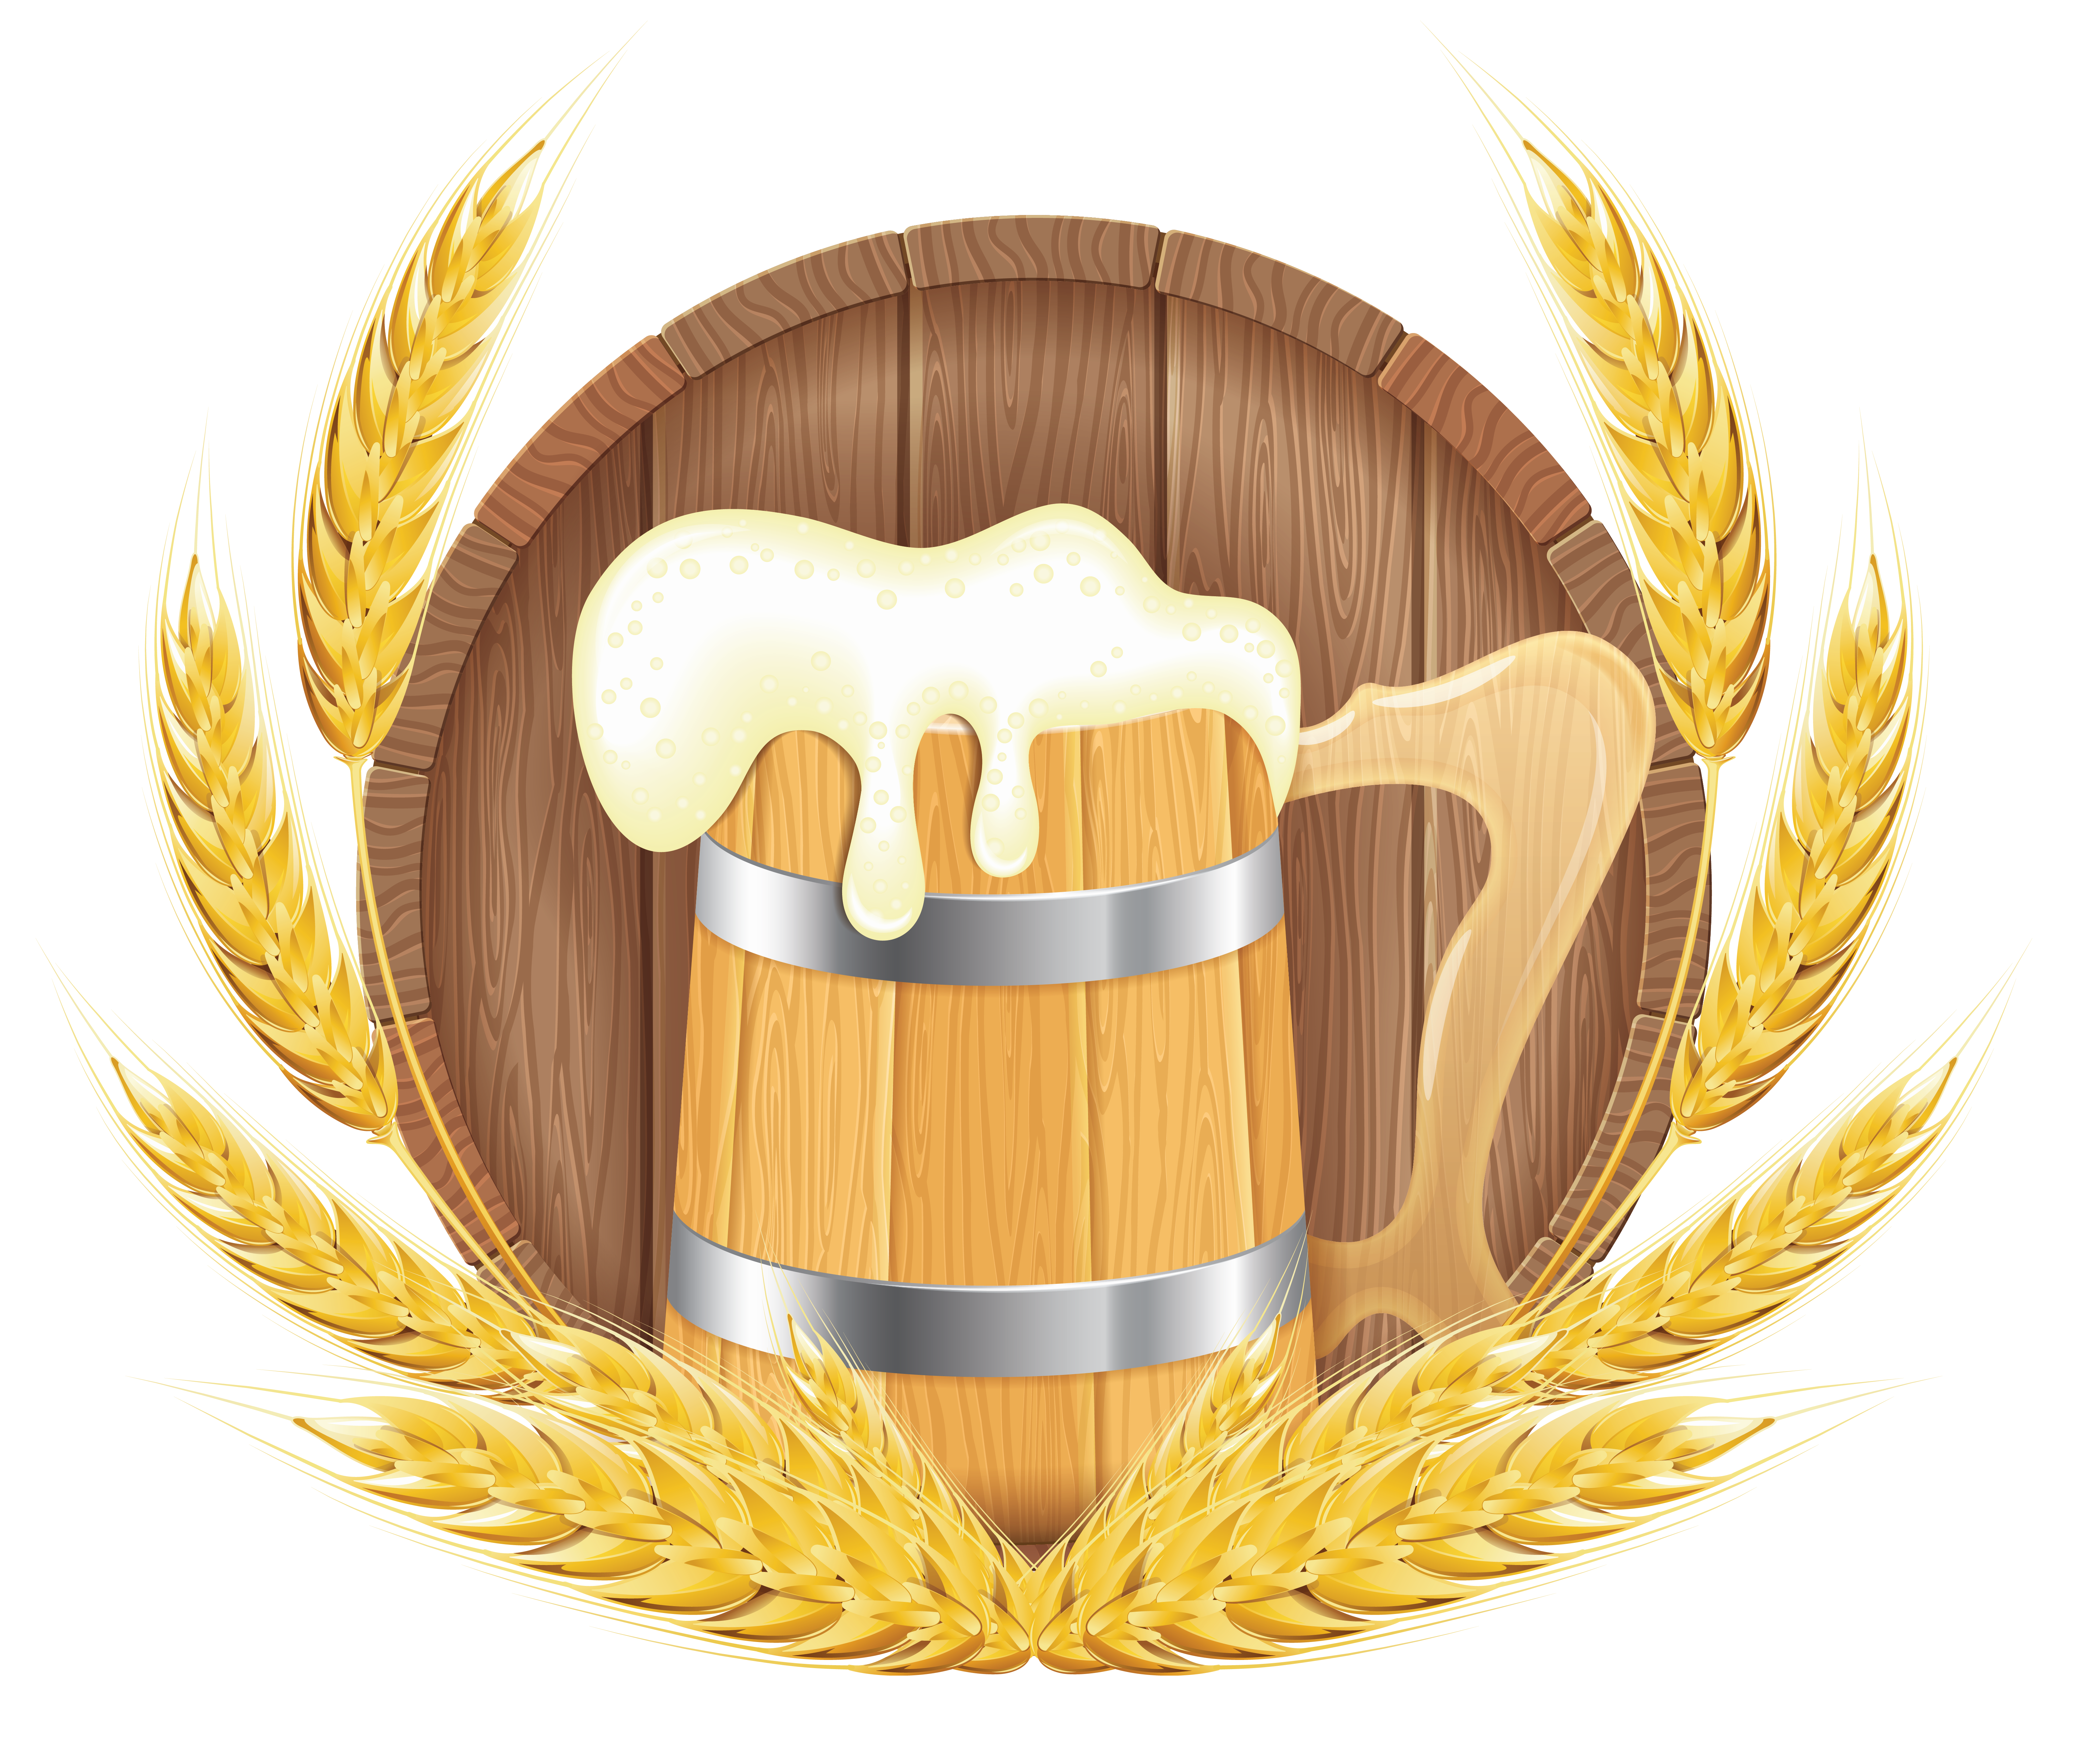 jpg black and white stock Barrel mug and wheat. Oktoberfest beer clipart.